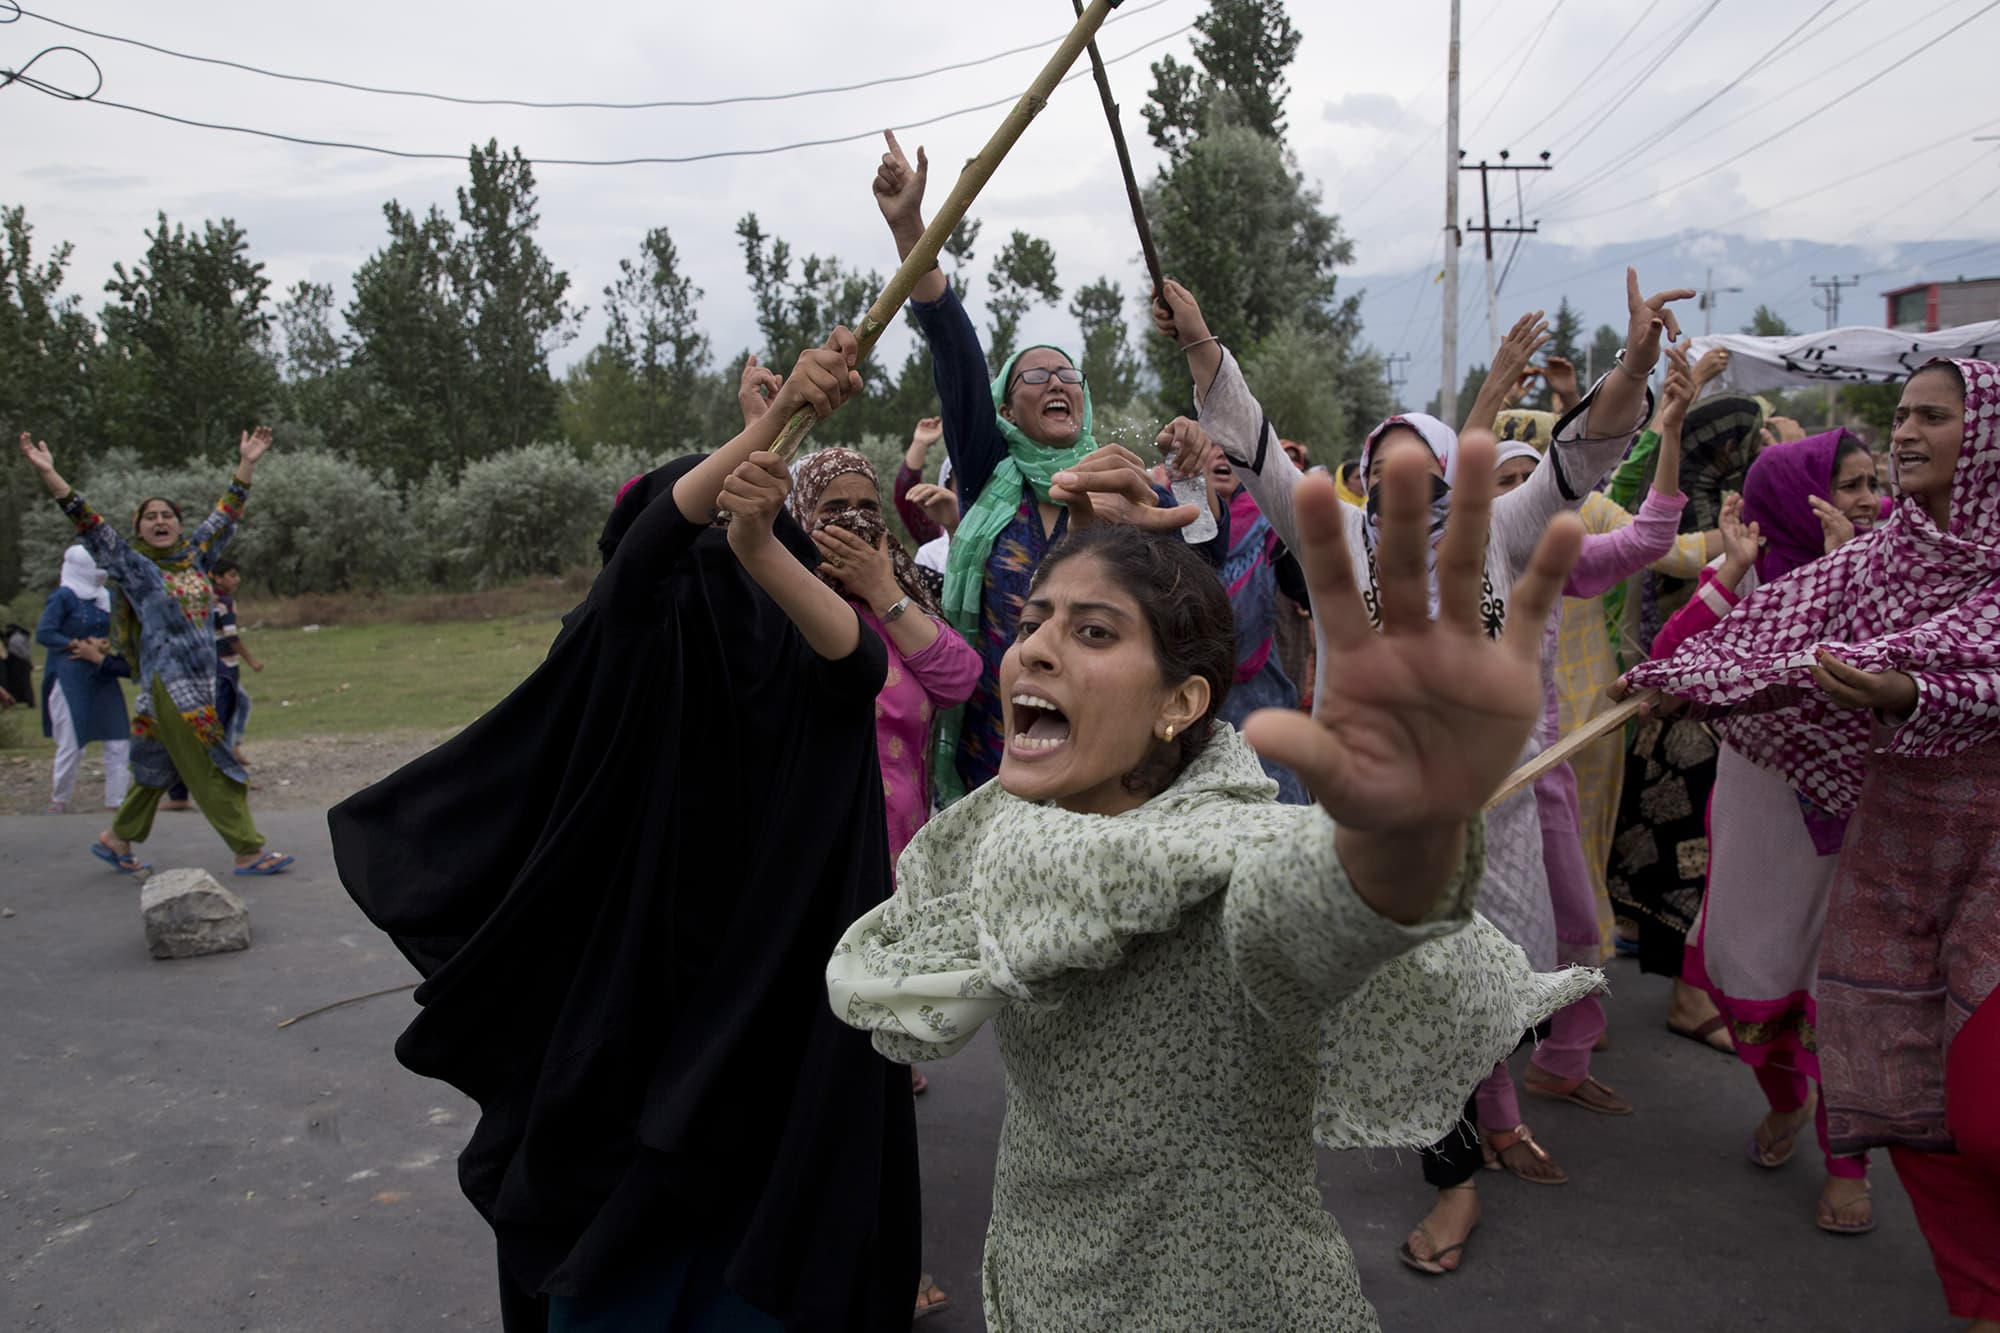 Kashmiri women shout slogans as Indian policemen fire teargas and live ammunition in the air to stop a protest march against the Indian government in Srinagar under curfew. ─ AP